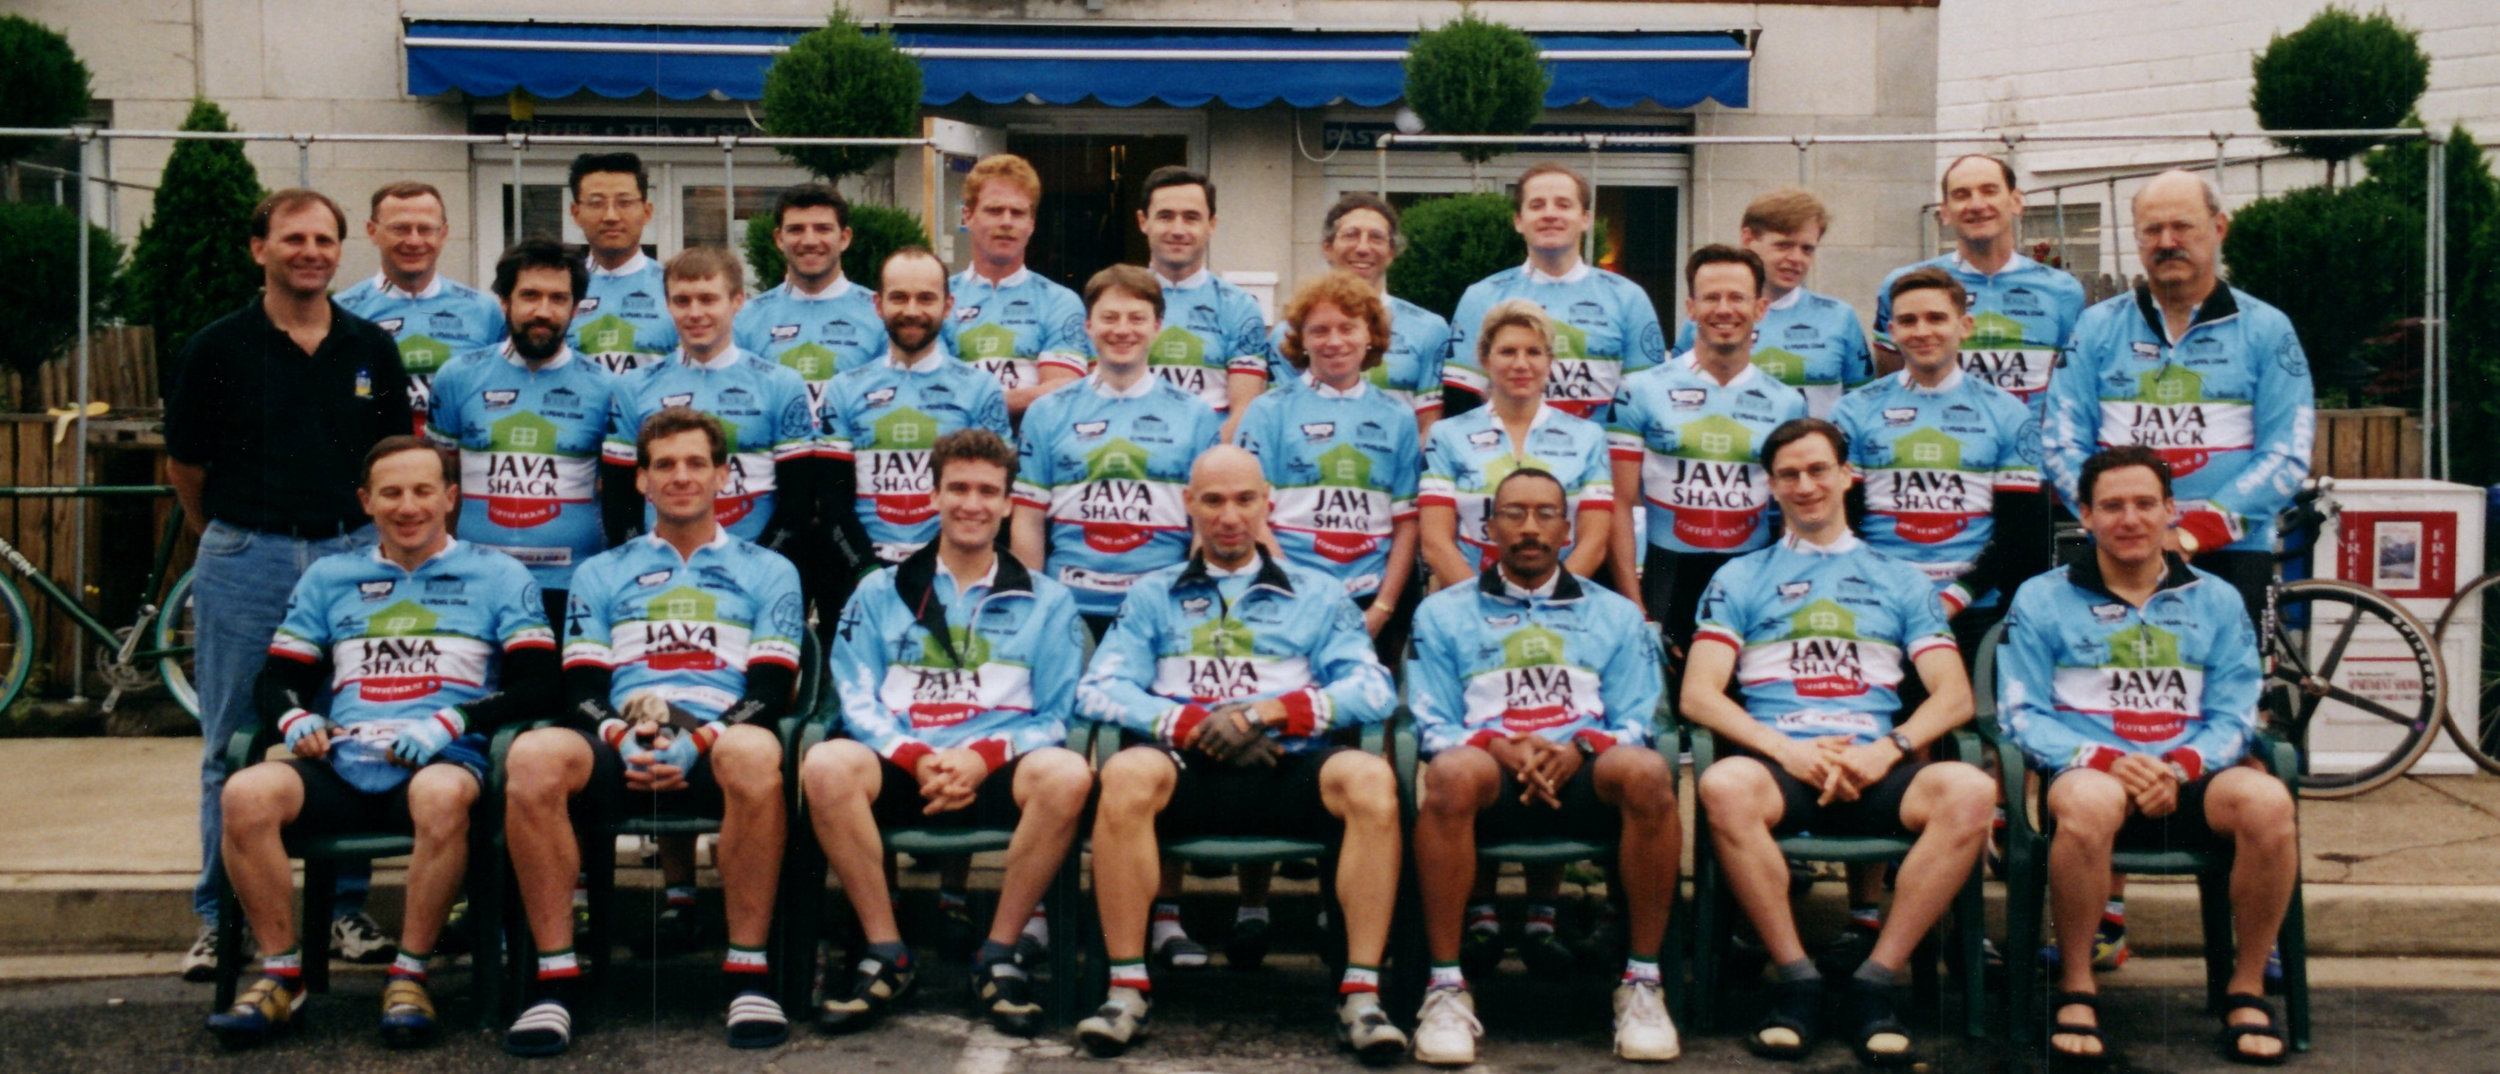 1998 Team Photo.jpeg